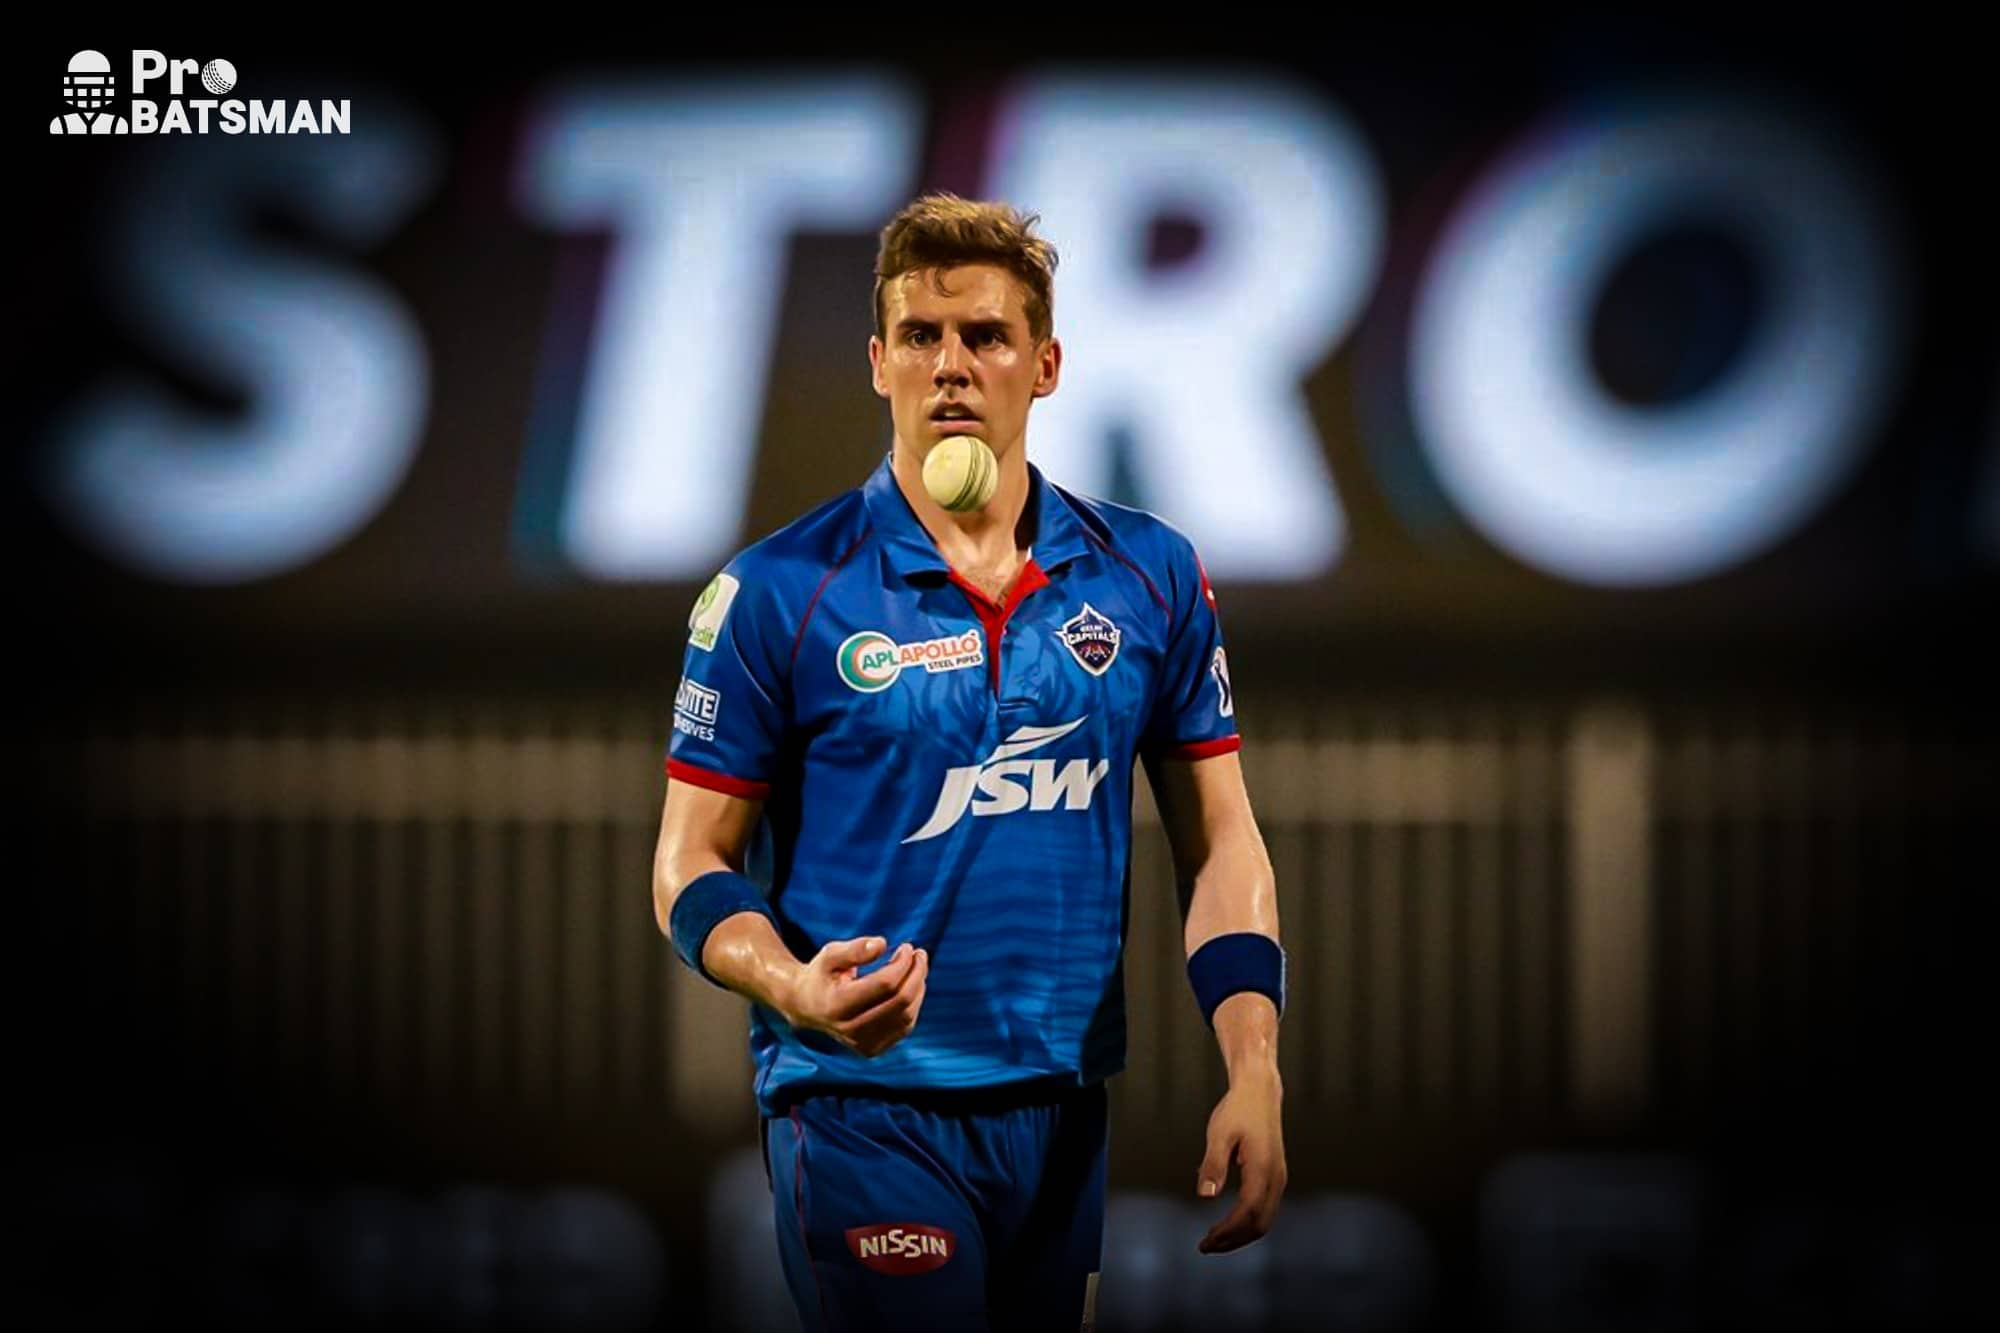 IPL 2021: Delhi Capitals Pacer Anrich Nortje Tests COVID-19 Positive - Reports